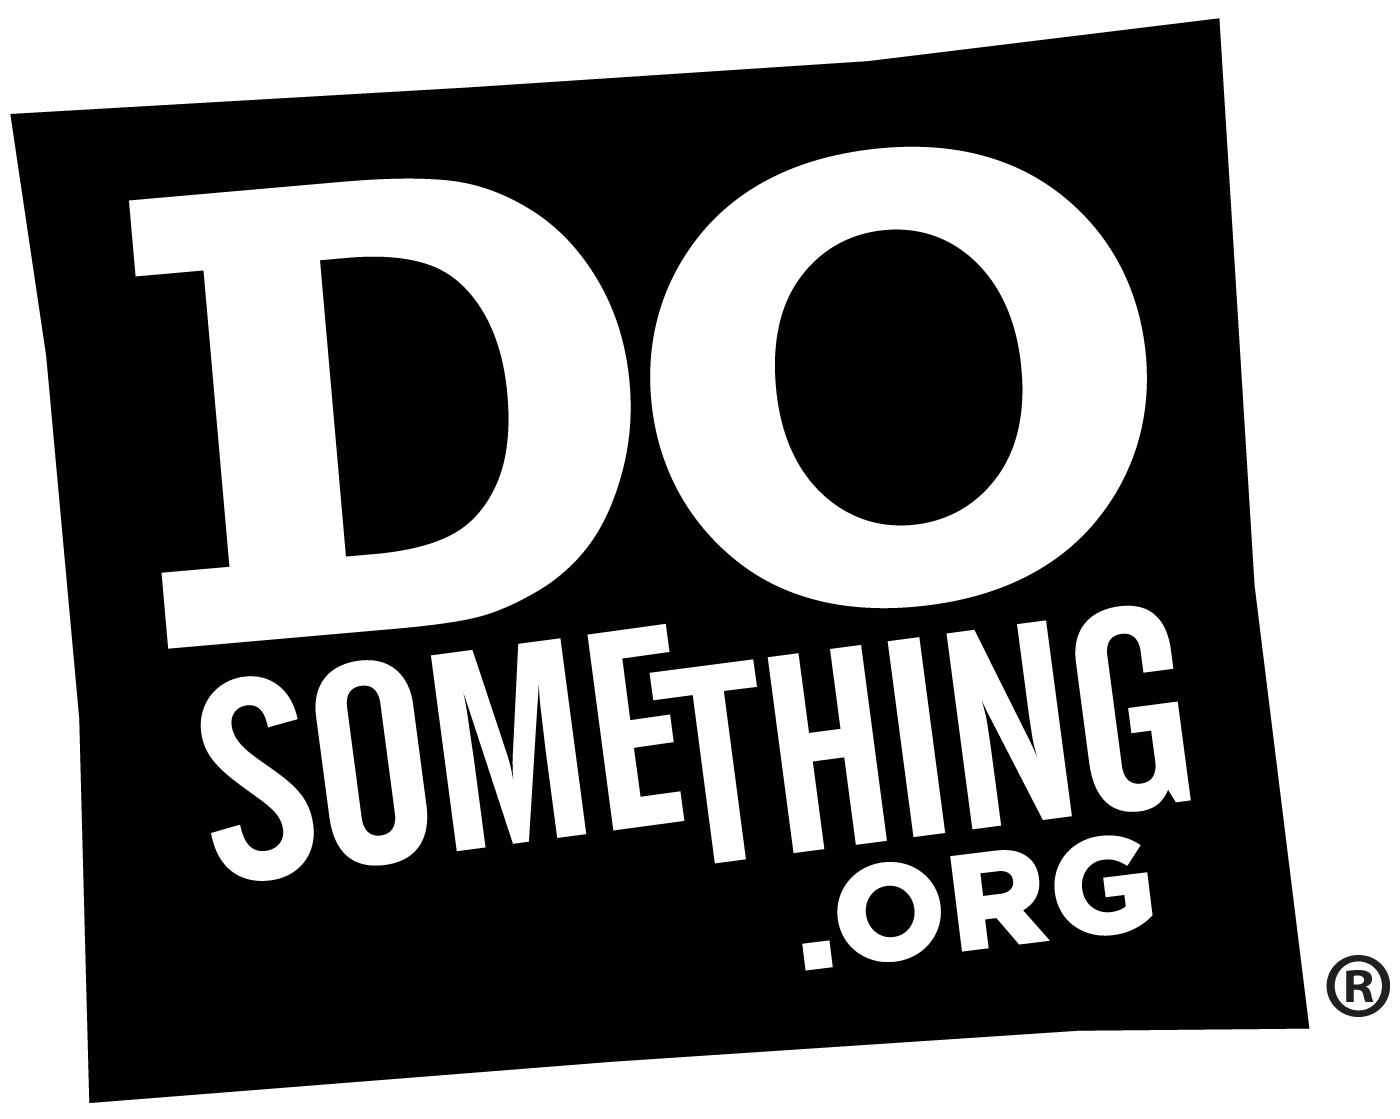 Community Service Organization - DoSomething.org  4